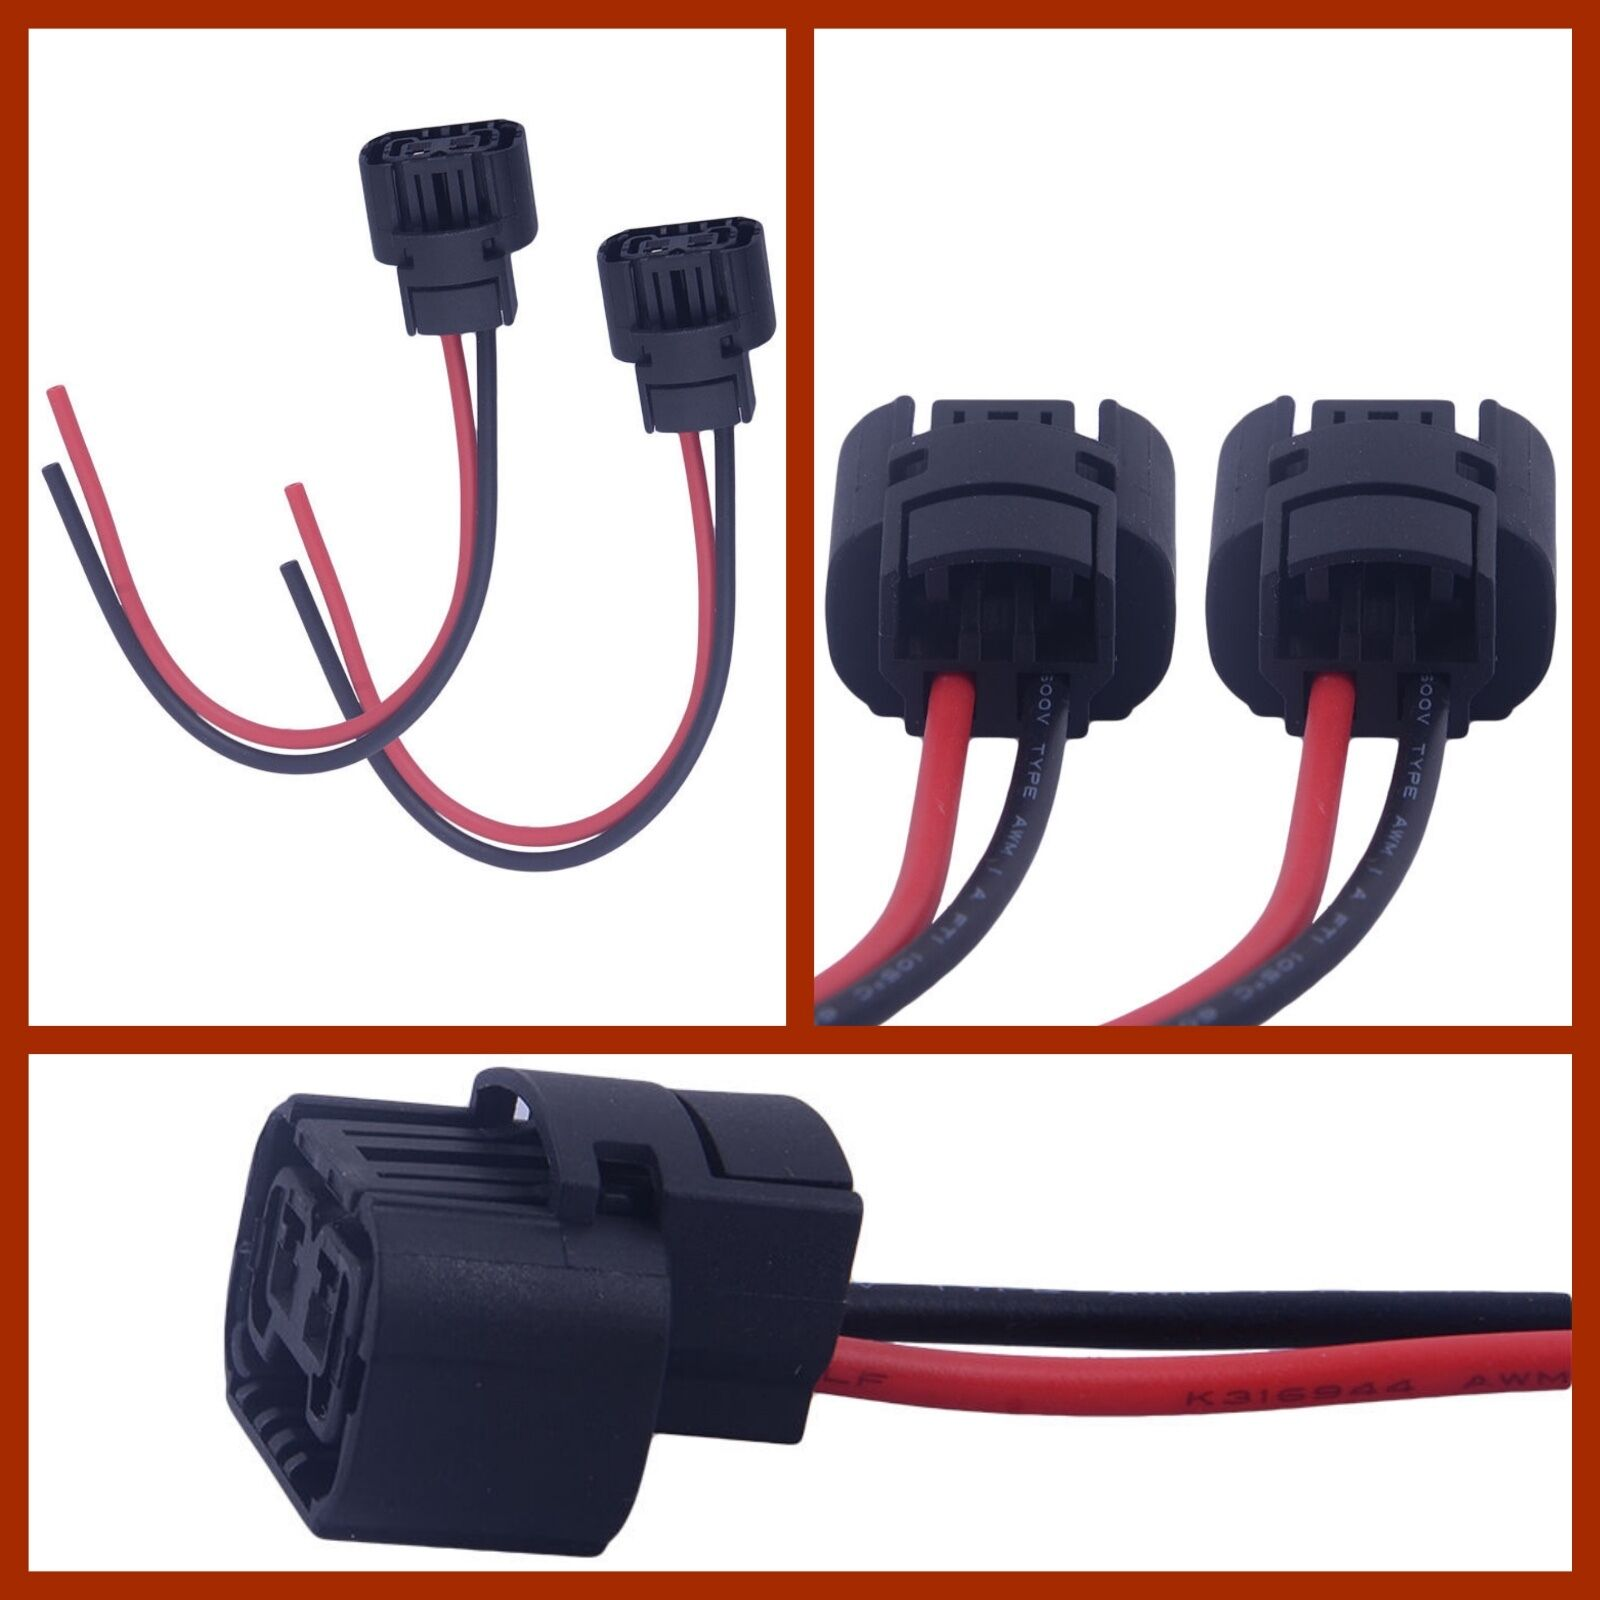 New 5202 H16 2504 Ps24w Female Connector Wiring Pigtail Harness For Gm Light Fog